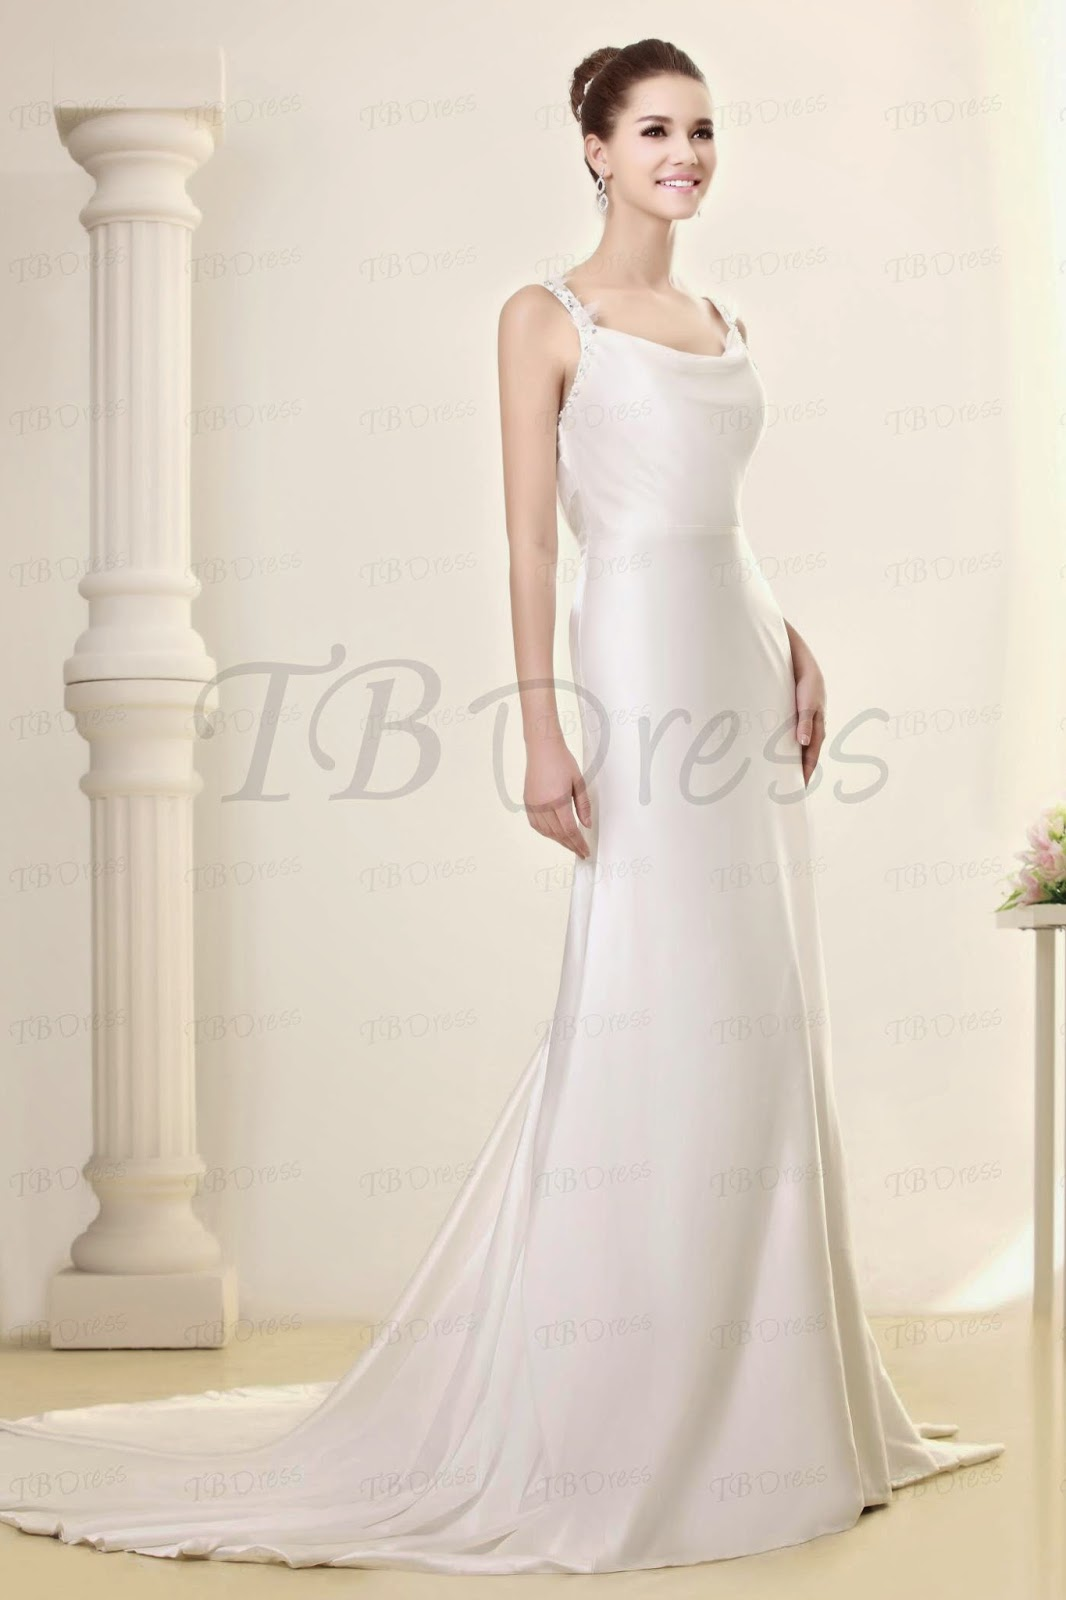 Tbdress style sheath wedding dresses for Website for wedding dresses